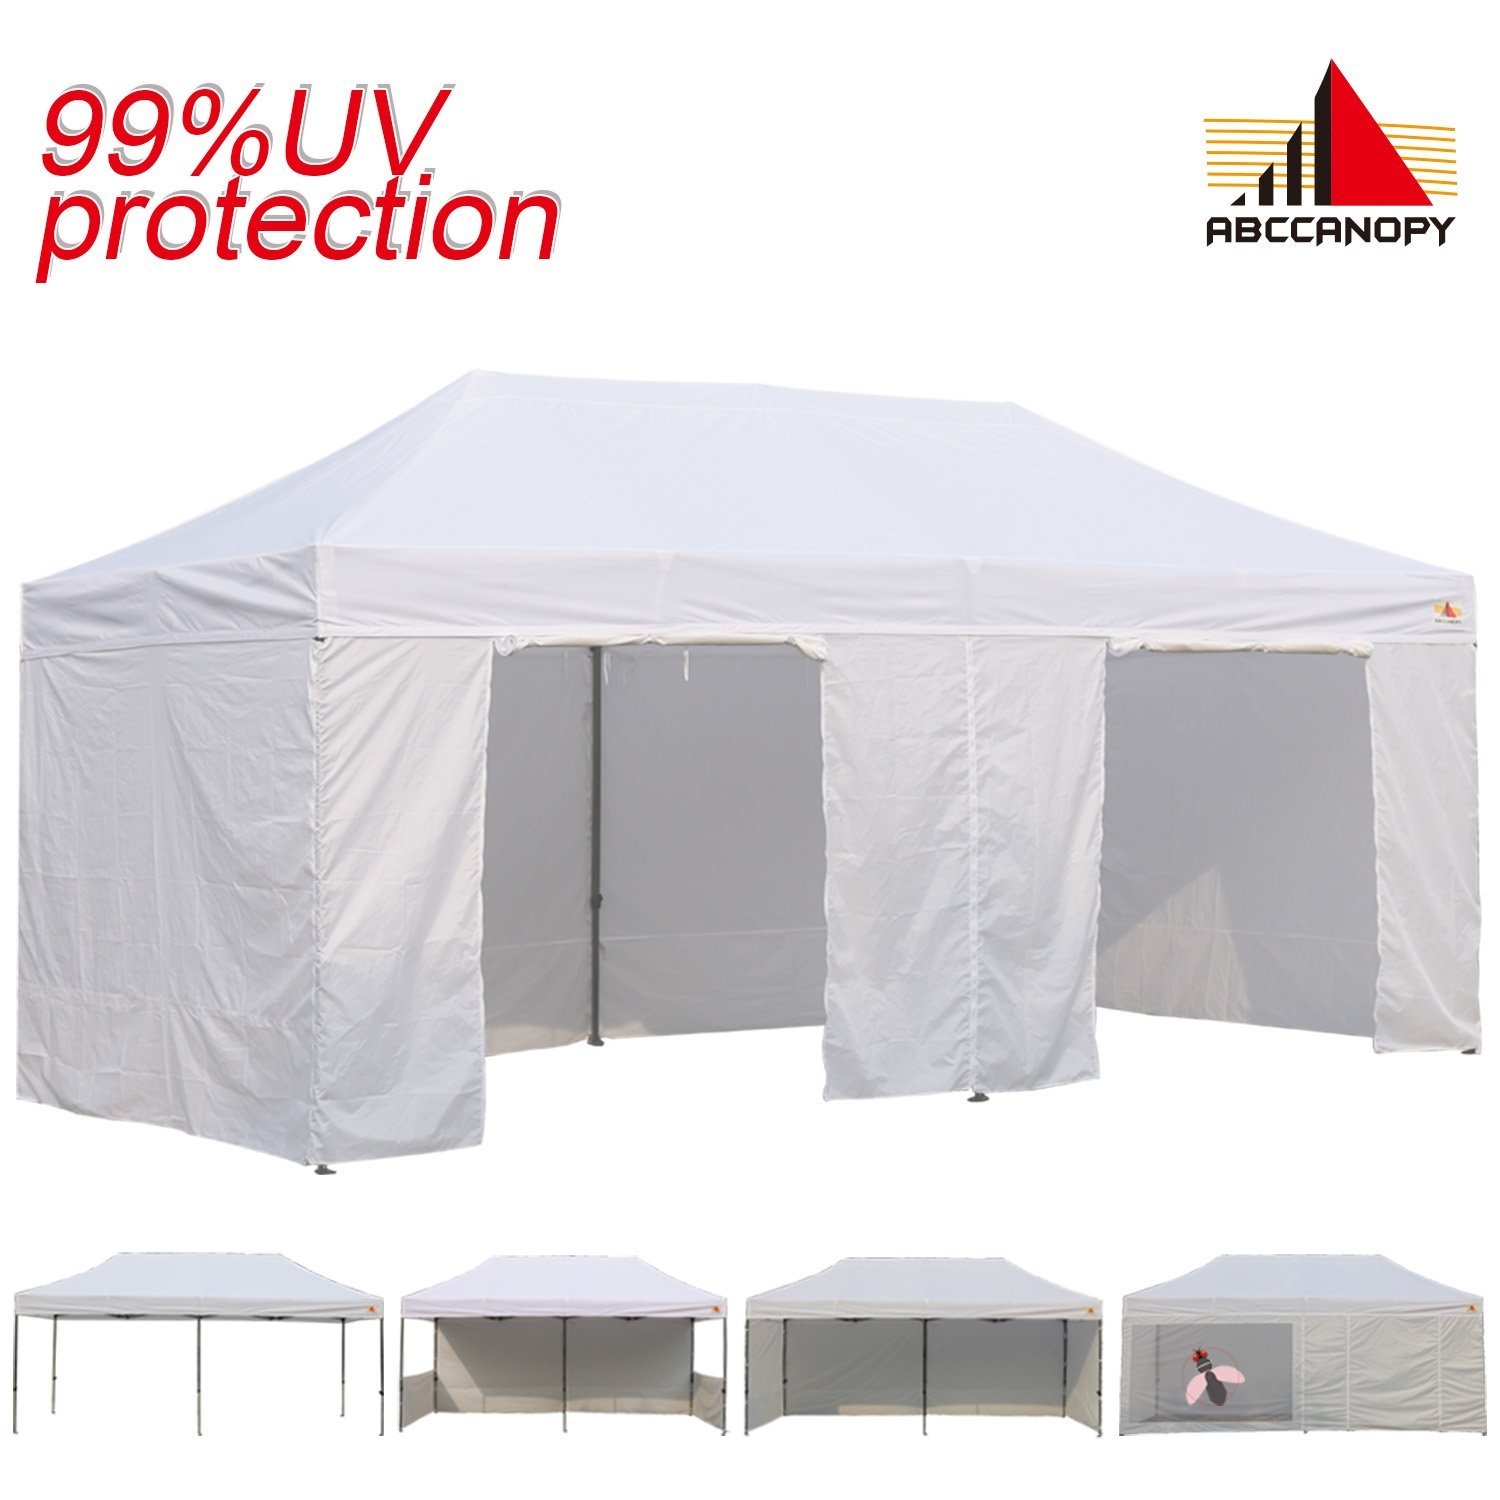 bae17bc4a24 AbcCanopy 10x20 EZ Pop up Canopy Tent Instant Shelter Commercial Portable  Market Canopy with Matching Sidewalls